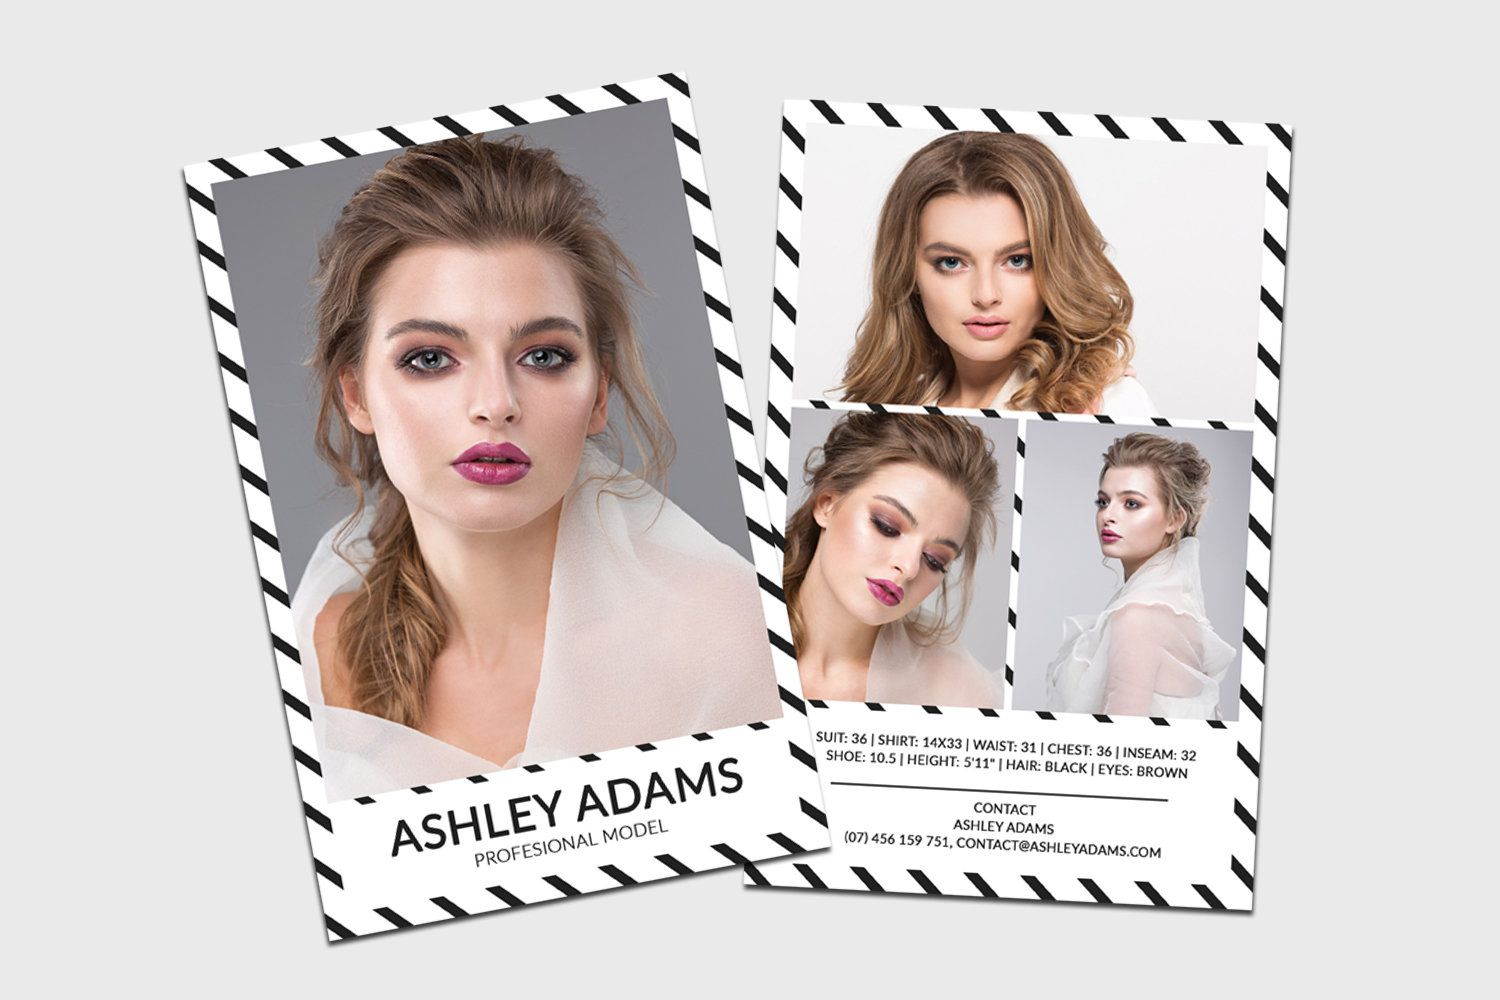 Modeling Comp Card Model Agency Zed Card Photoshop Elements Ms Word Template Modeling Card Instant Download Ht Model Comp Card Card Model Photoshop